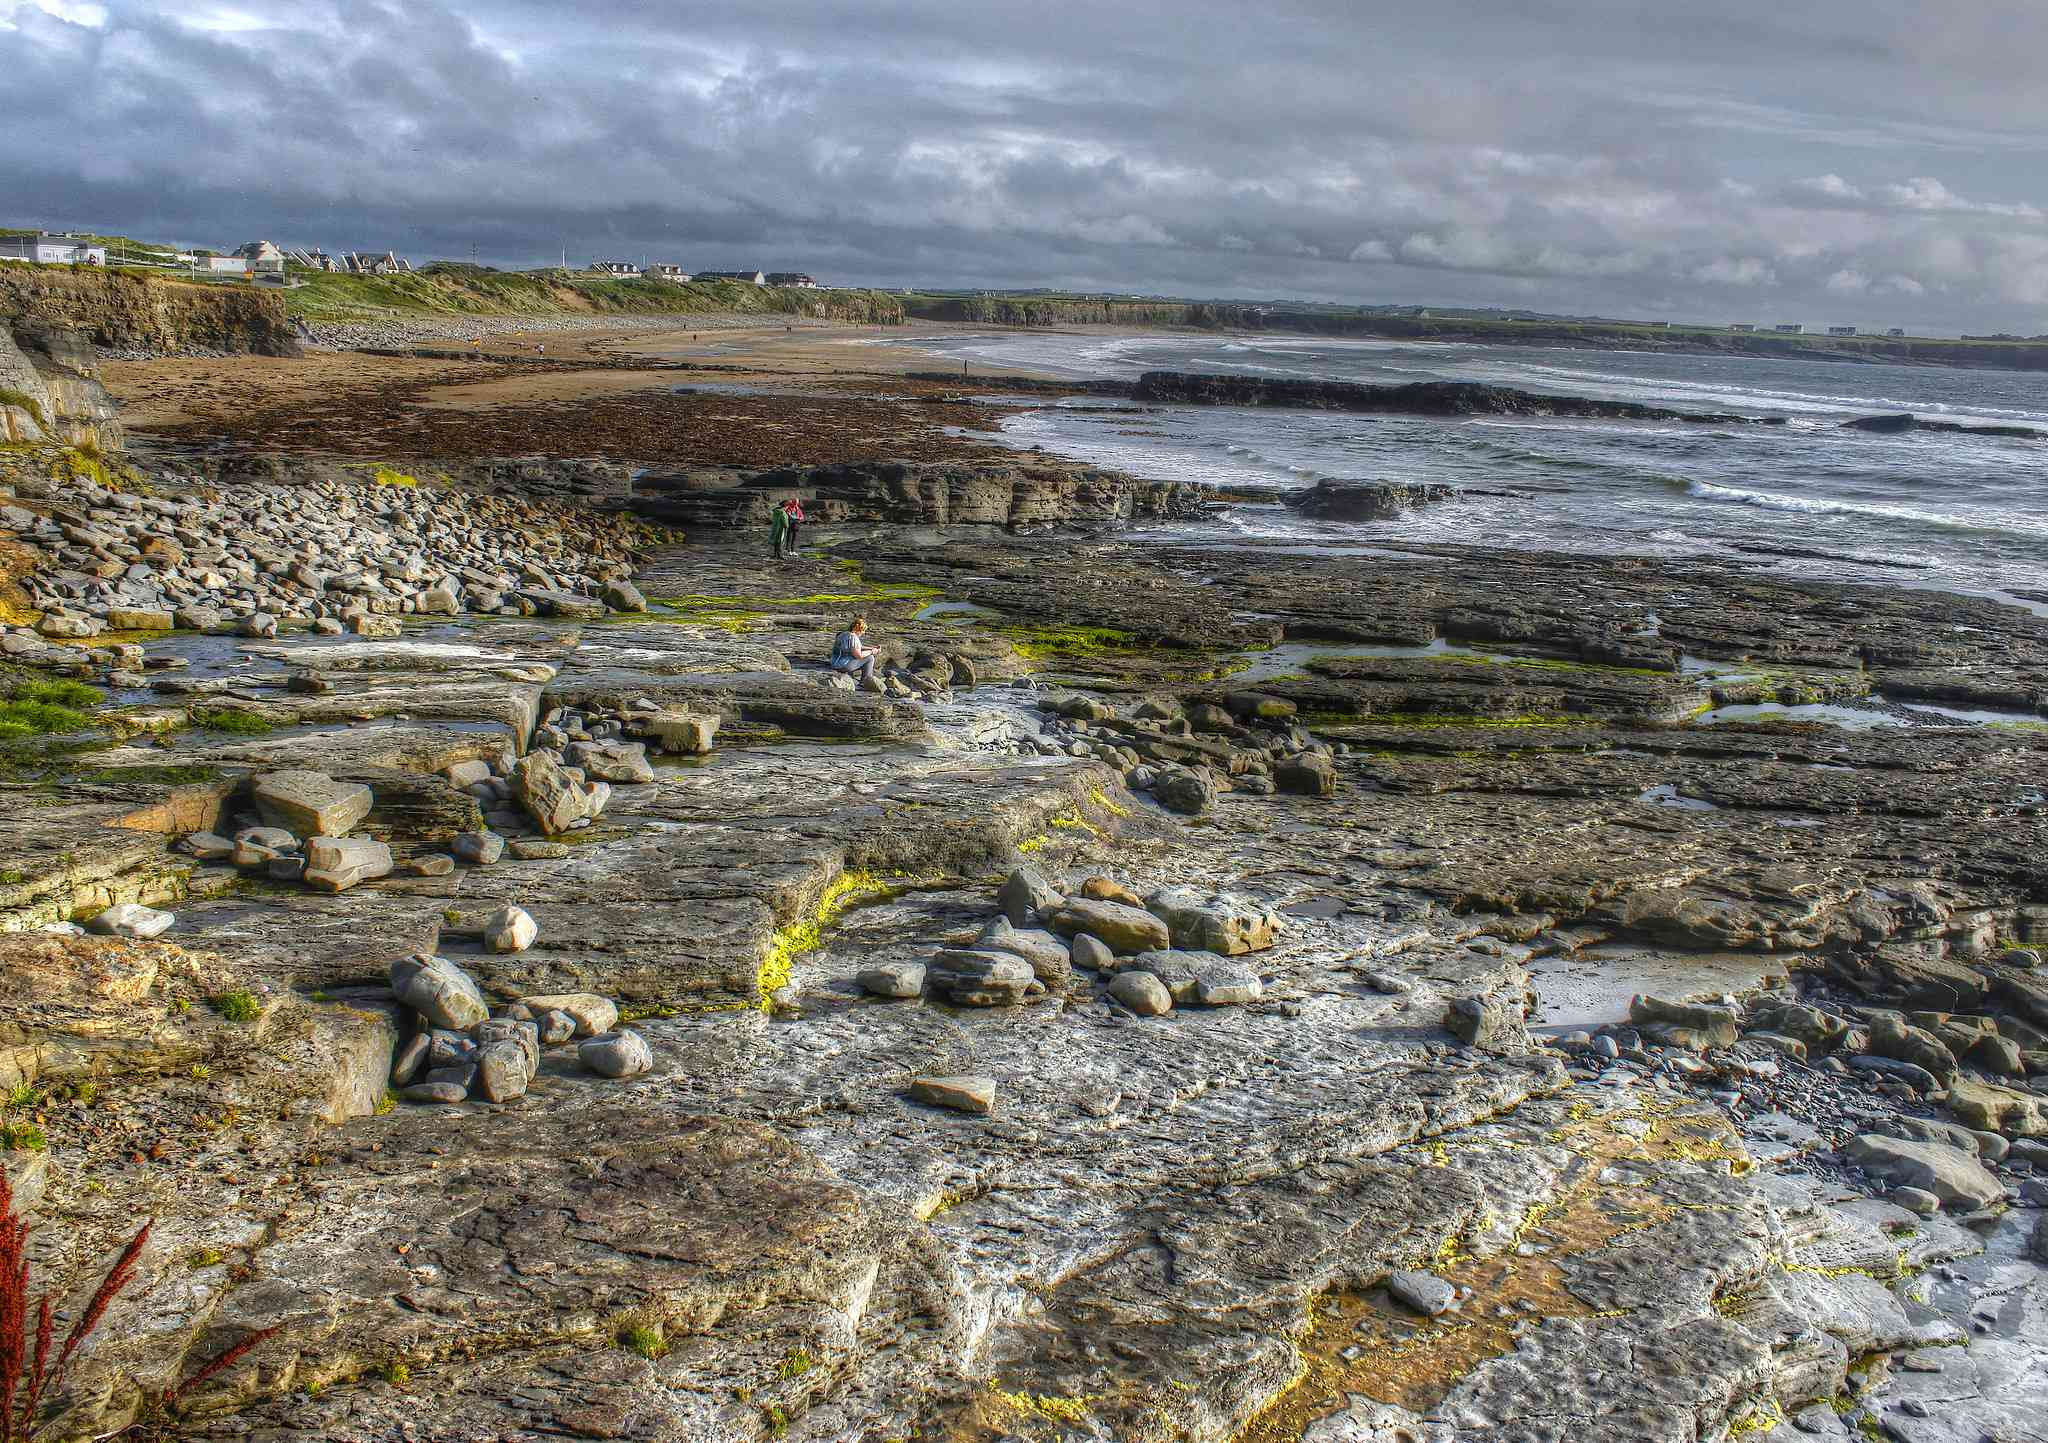 rocky shore at spanish point county Clare